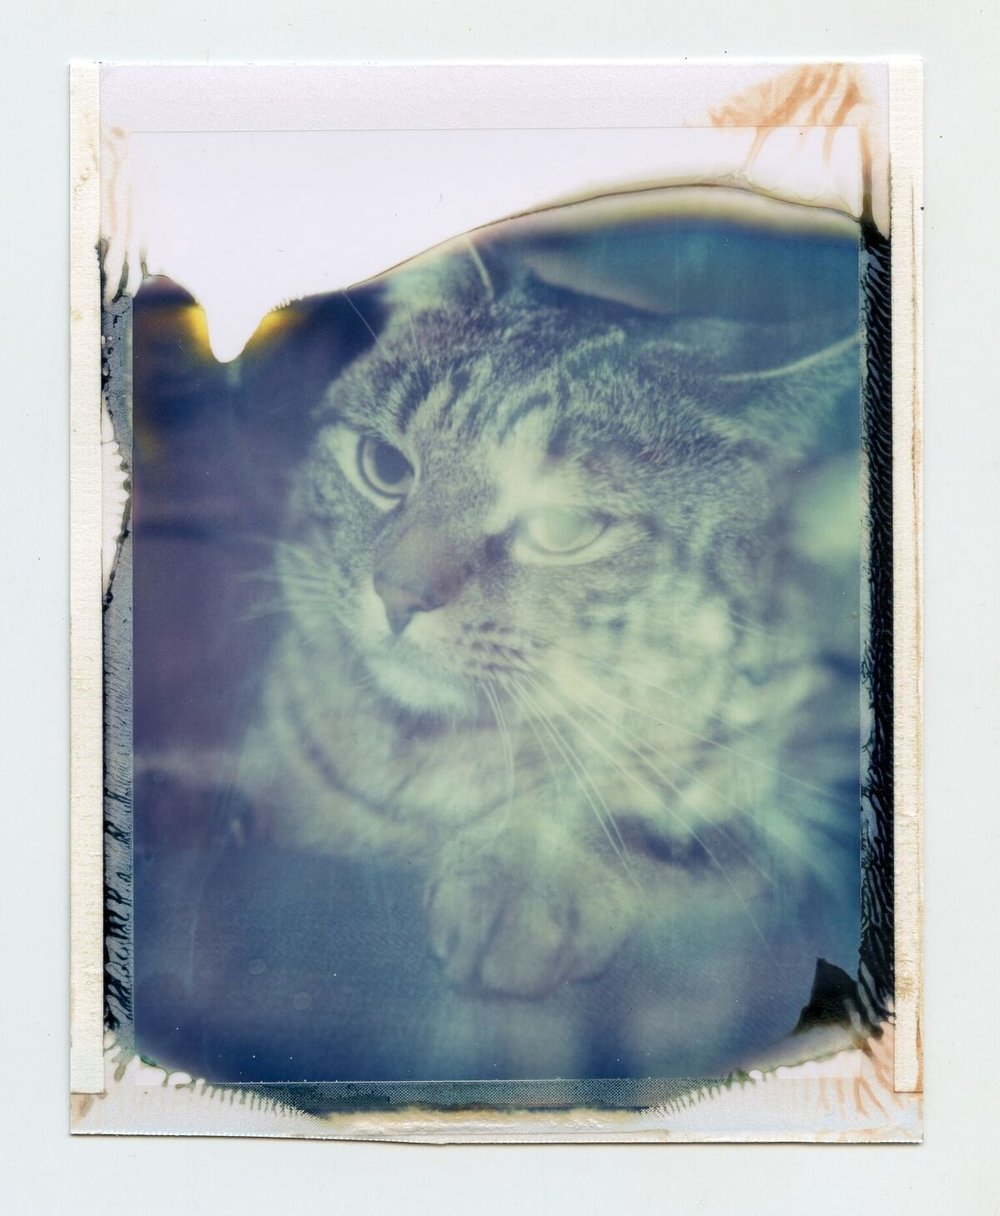 Andrew the Cat | Polaroid 180 | Polaroid 669 film | Blair Daffy